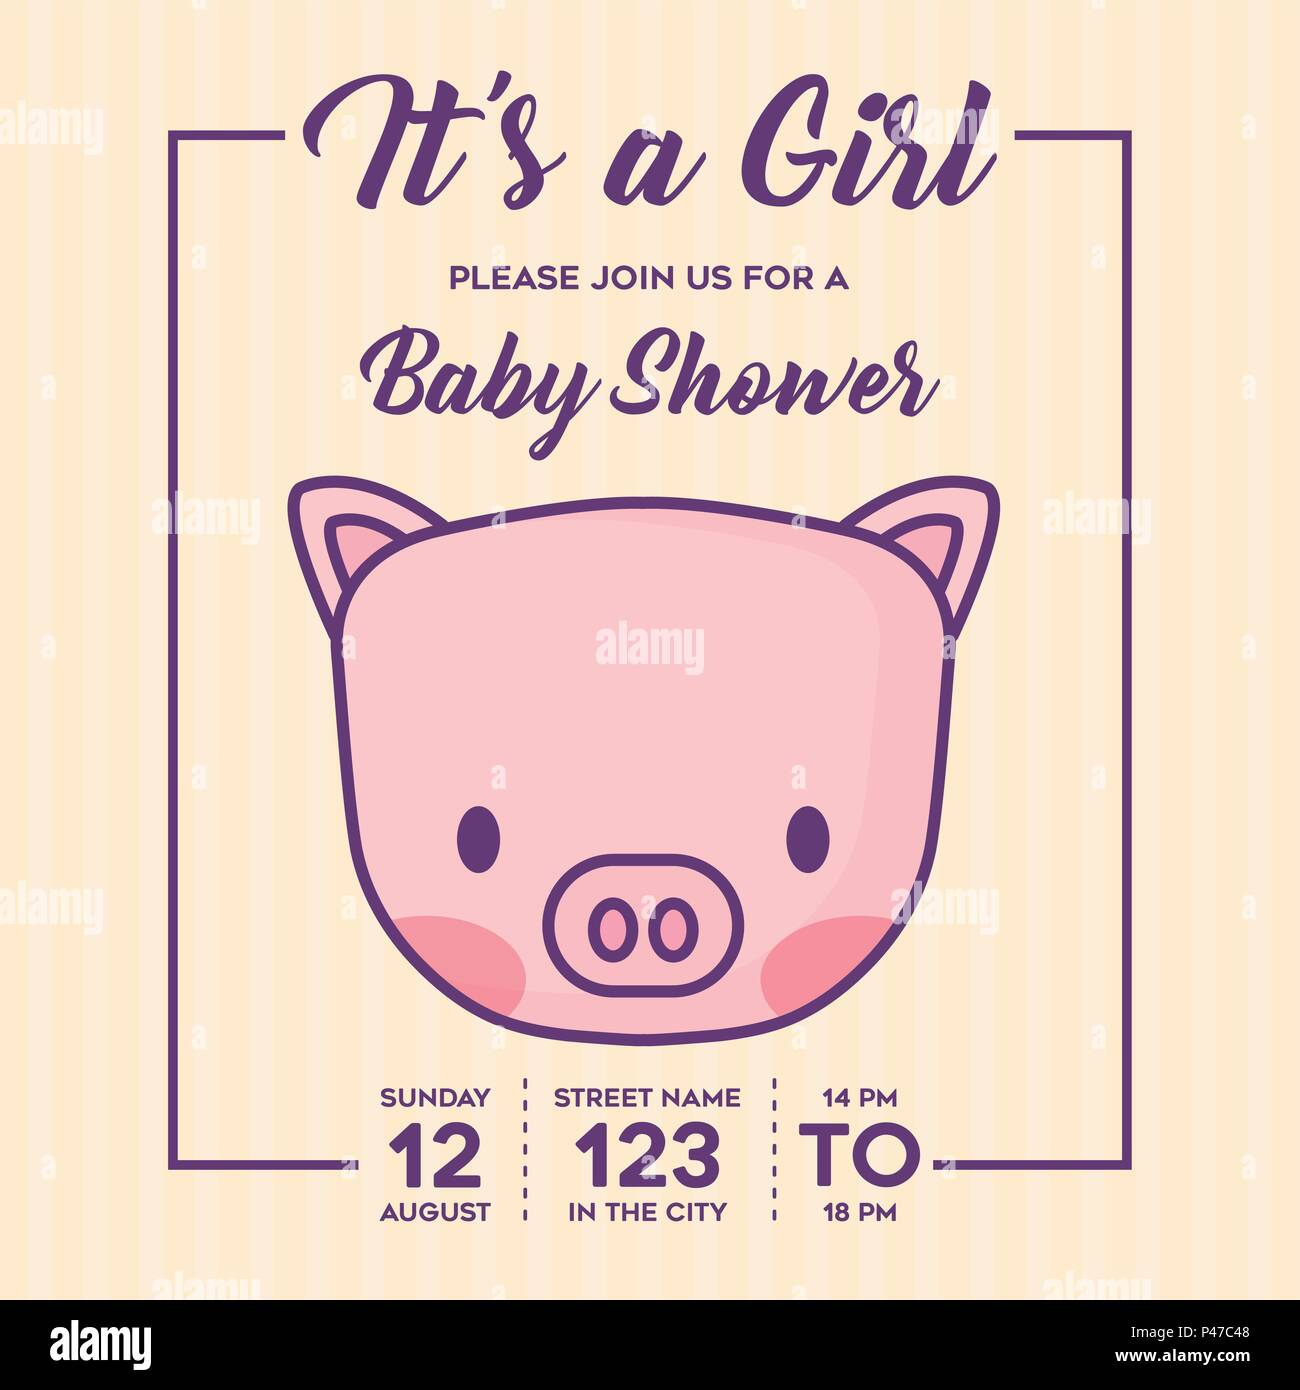 Its a girl Baby shower invitation with cute pig icon over yellow ...